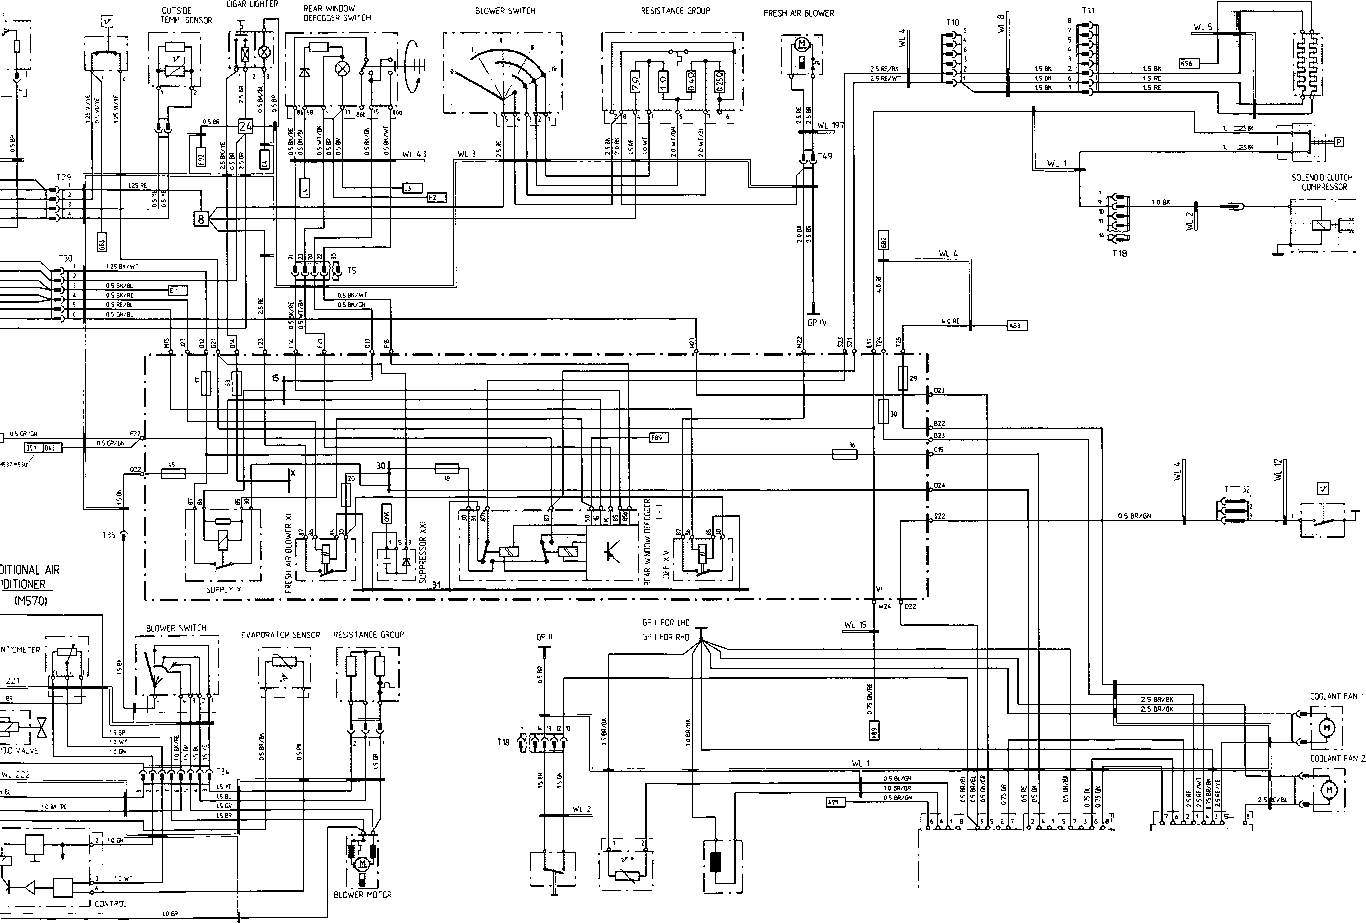 v13 s model 91 hheet b - flow diagram